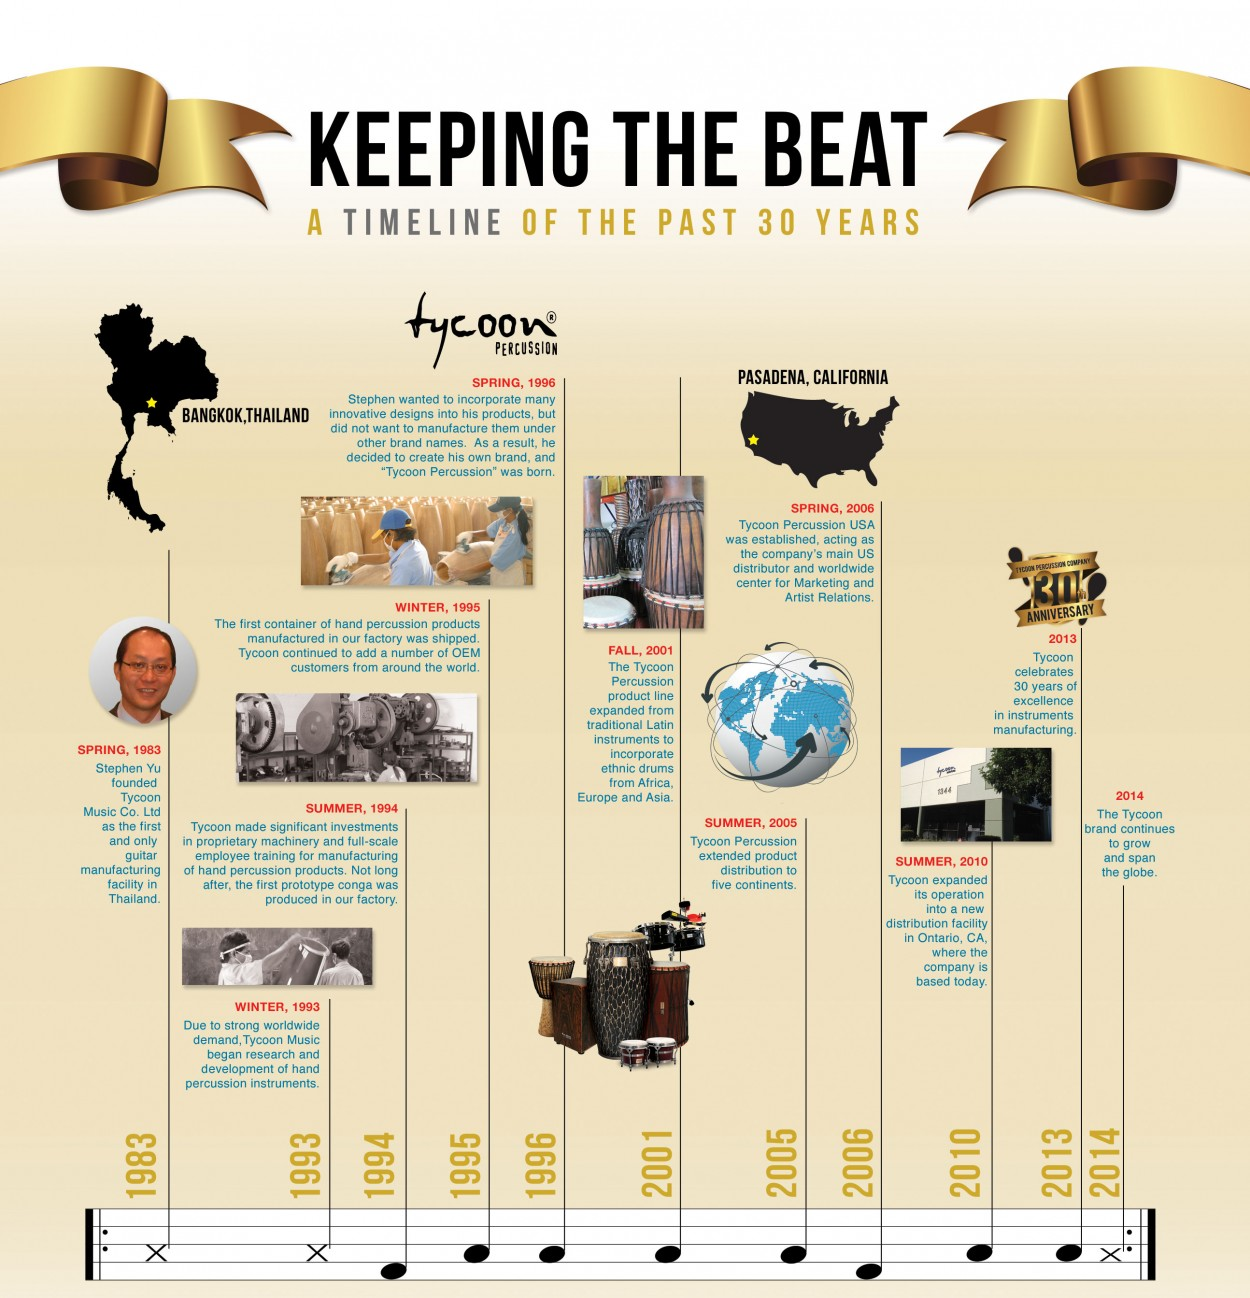 tycoon-Percussion-Timeline_2014